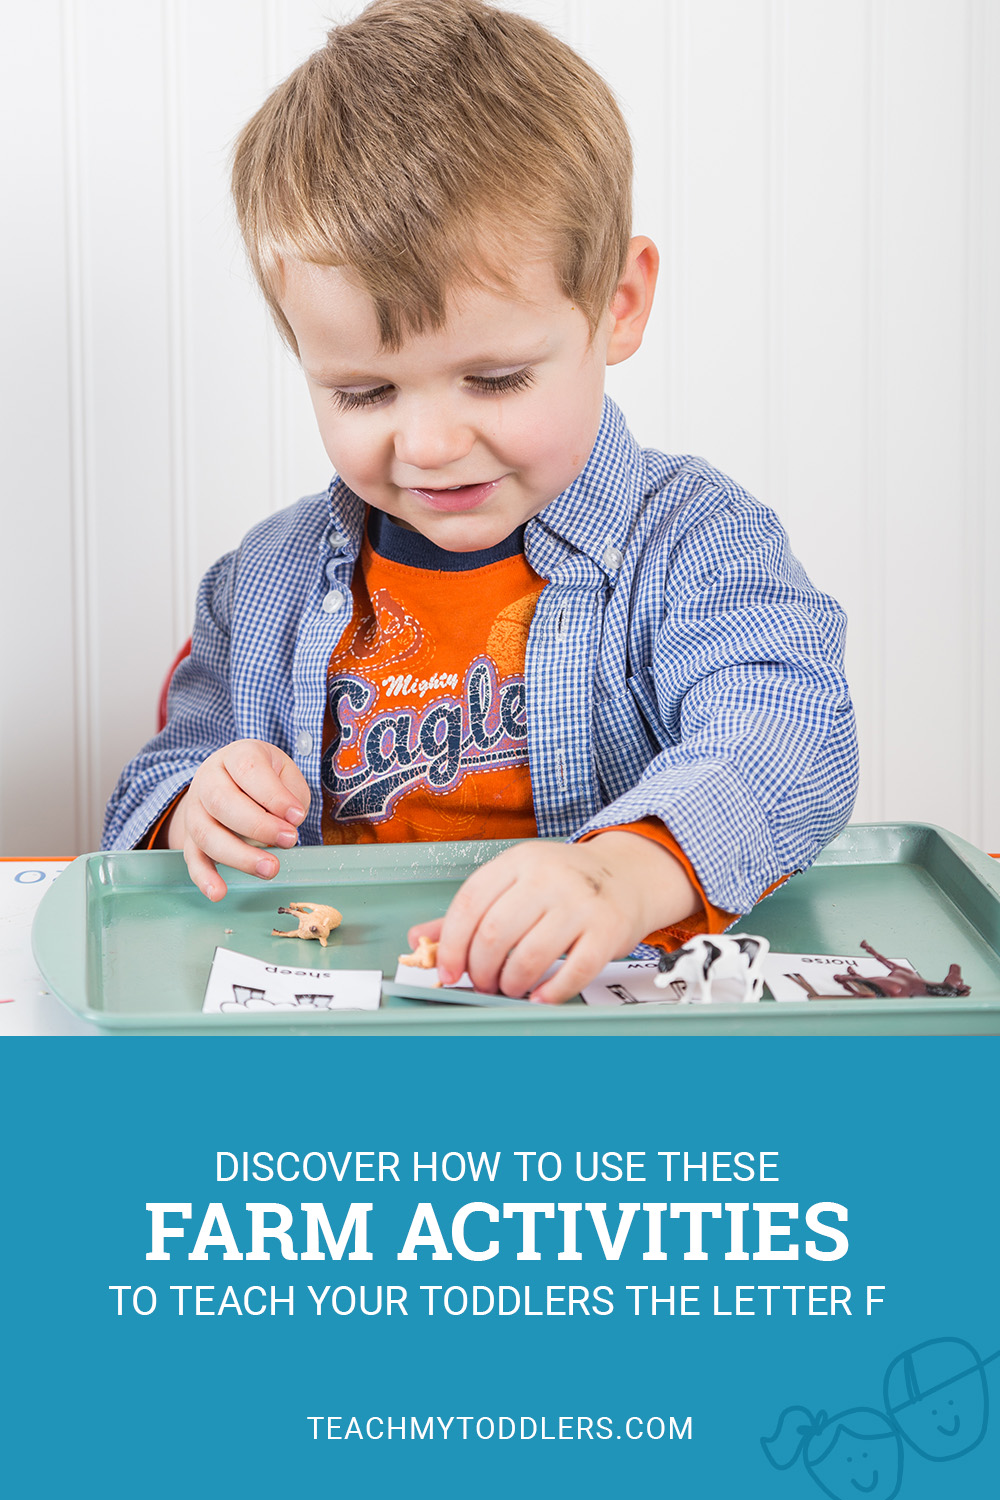 Discover how to use these f is for farm activities to teach toddlers the letter f